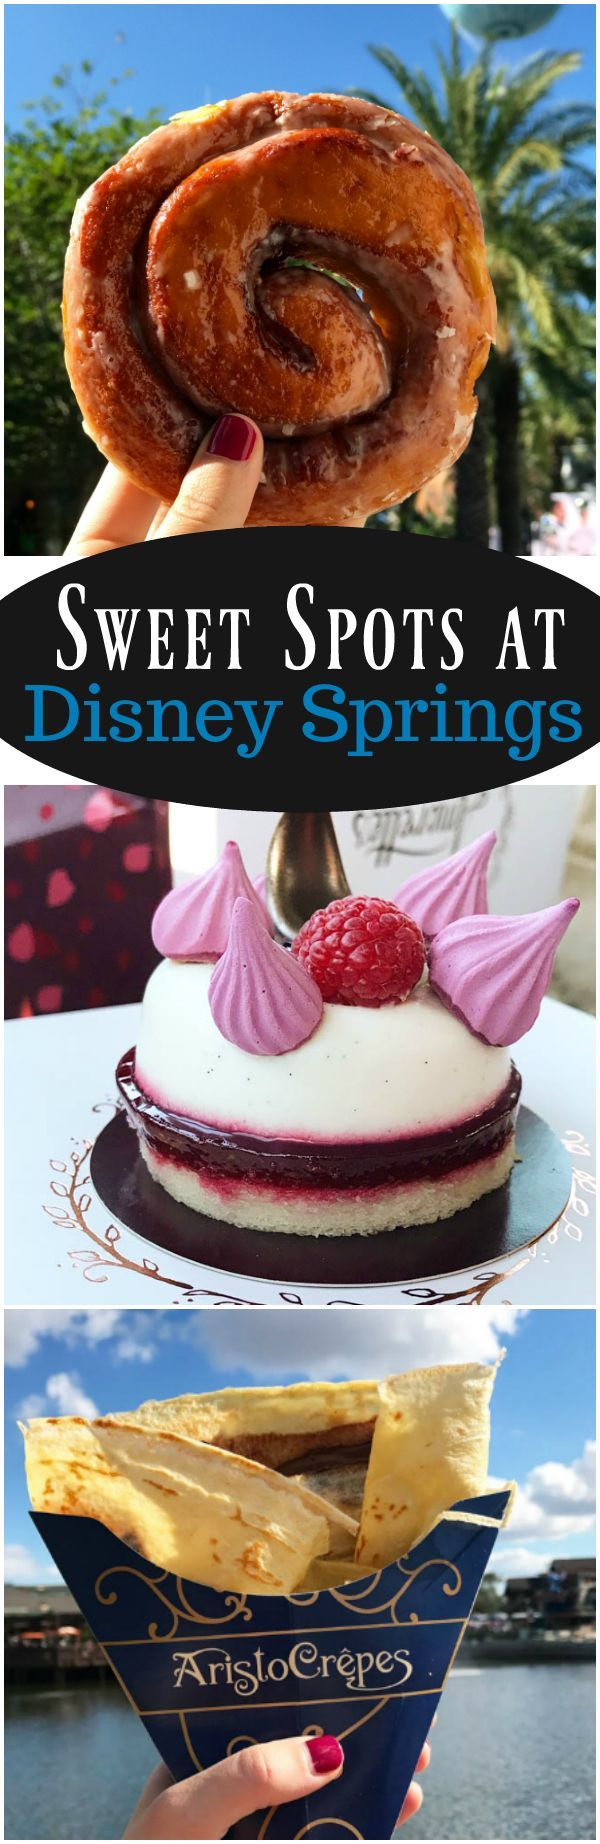 Disney Springs at Walt Disney World is one of the best places to grab dinner, drinks and dessert. Explore eight of my favorite Sweet Spots at Disney Springs including Amorette's Patisserie, Ghirardelli Ice Cream and Chocolate Shop and more! #disney #disneysprings #waltdisneyworld #florida #travel